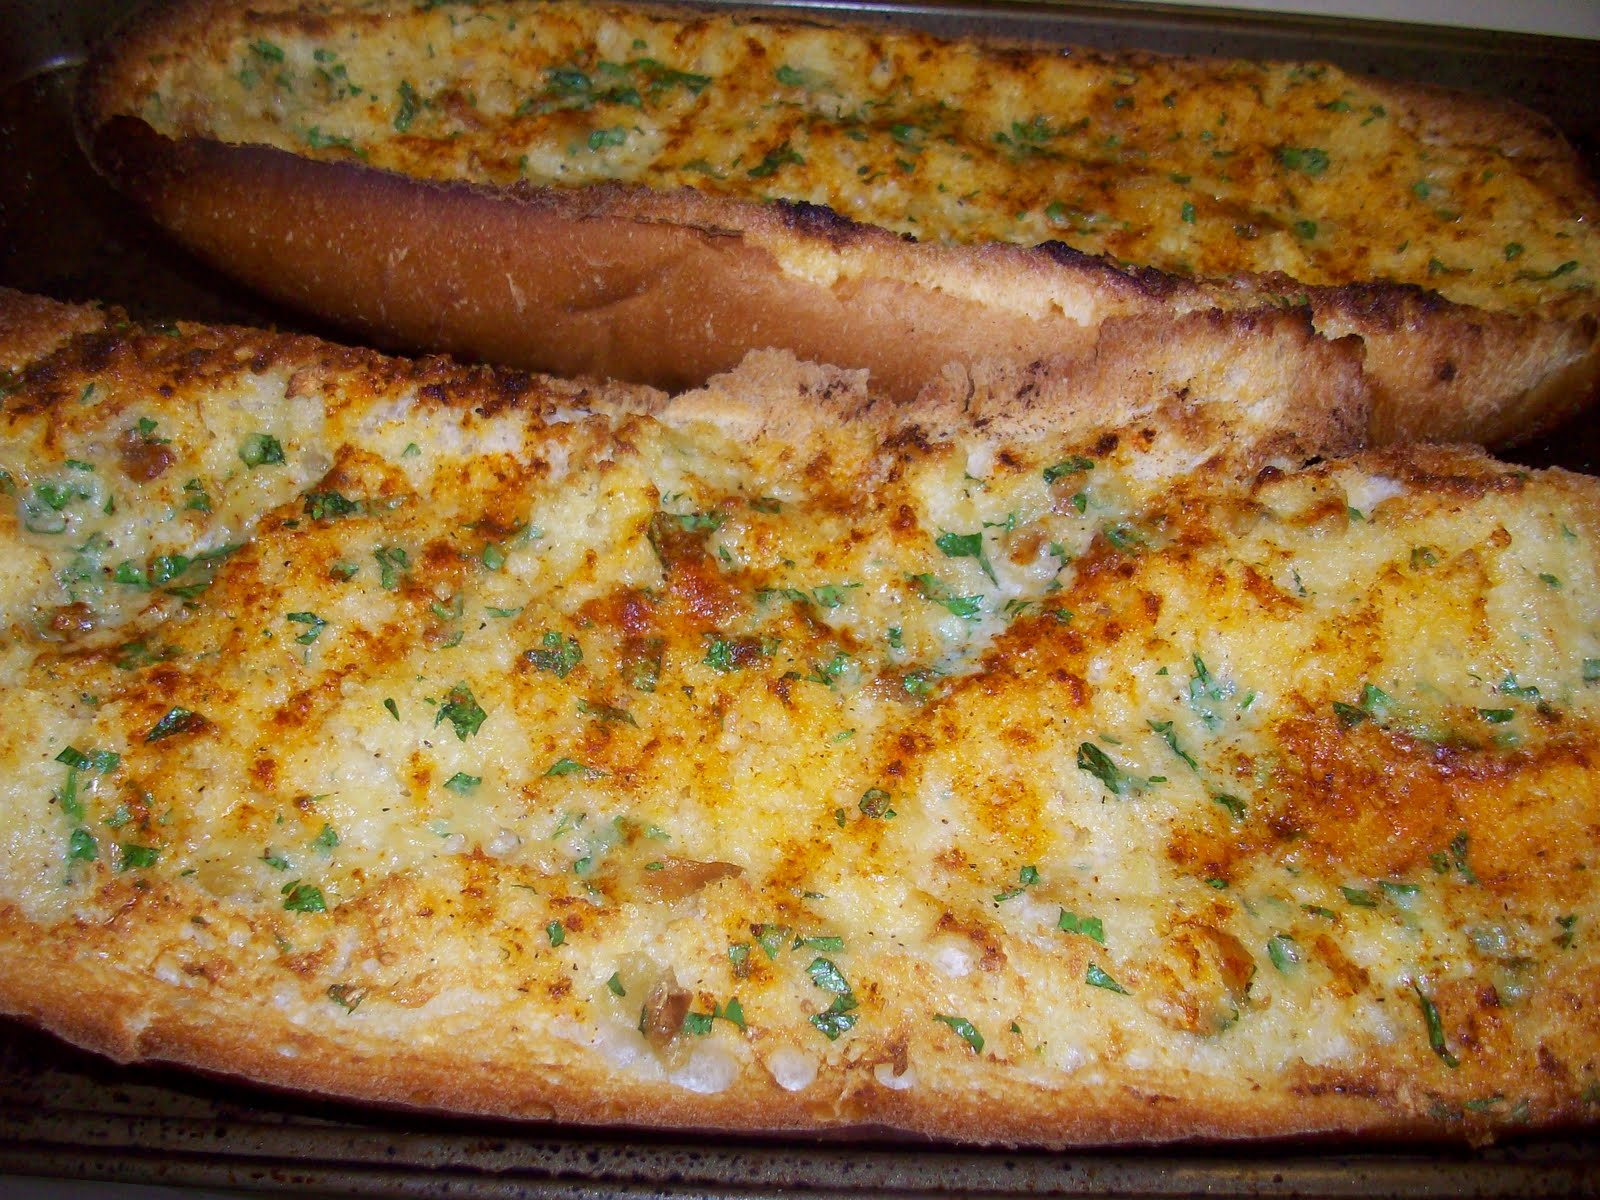 Cooking with Green: Garlic Bread